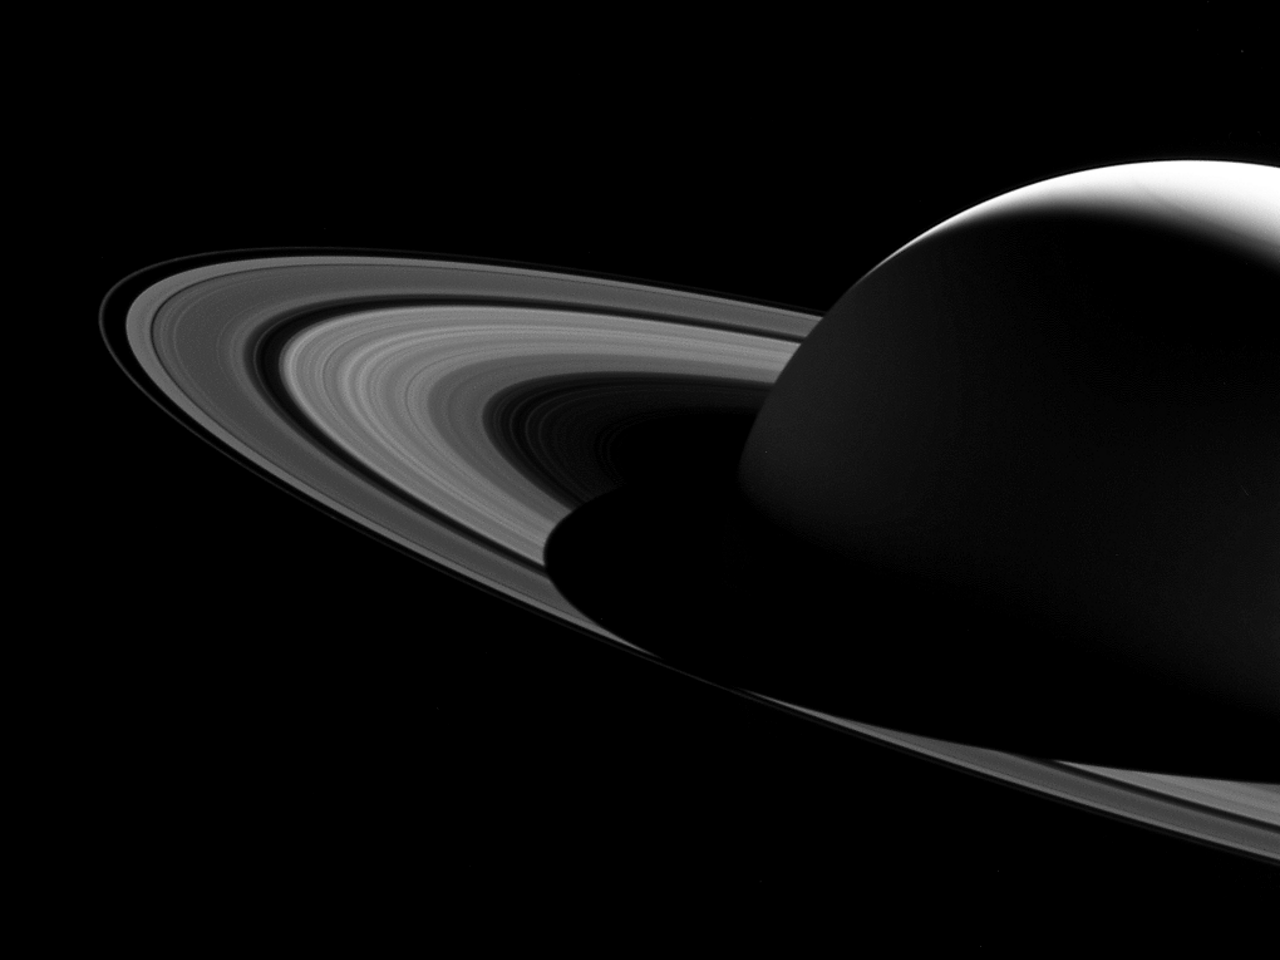 Saturn's shadow barely bisected rings